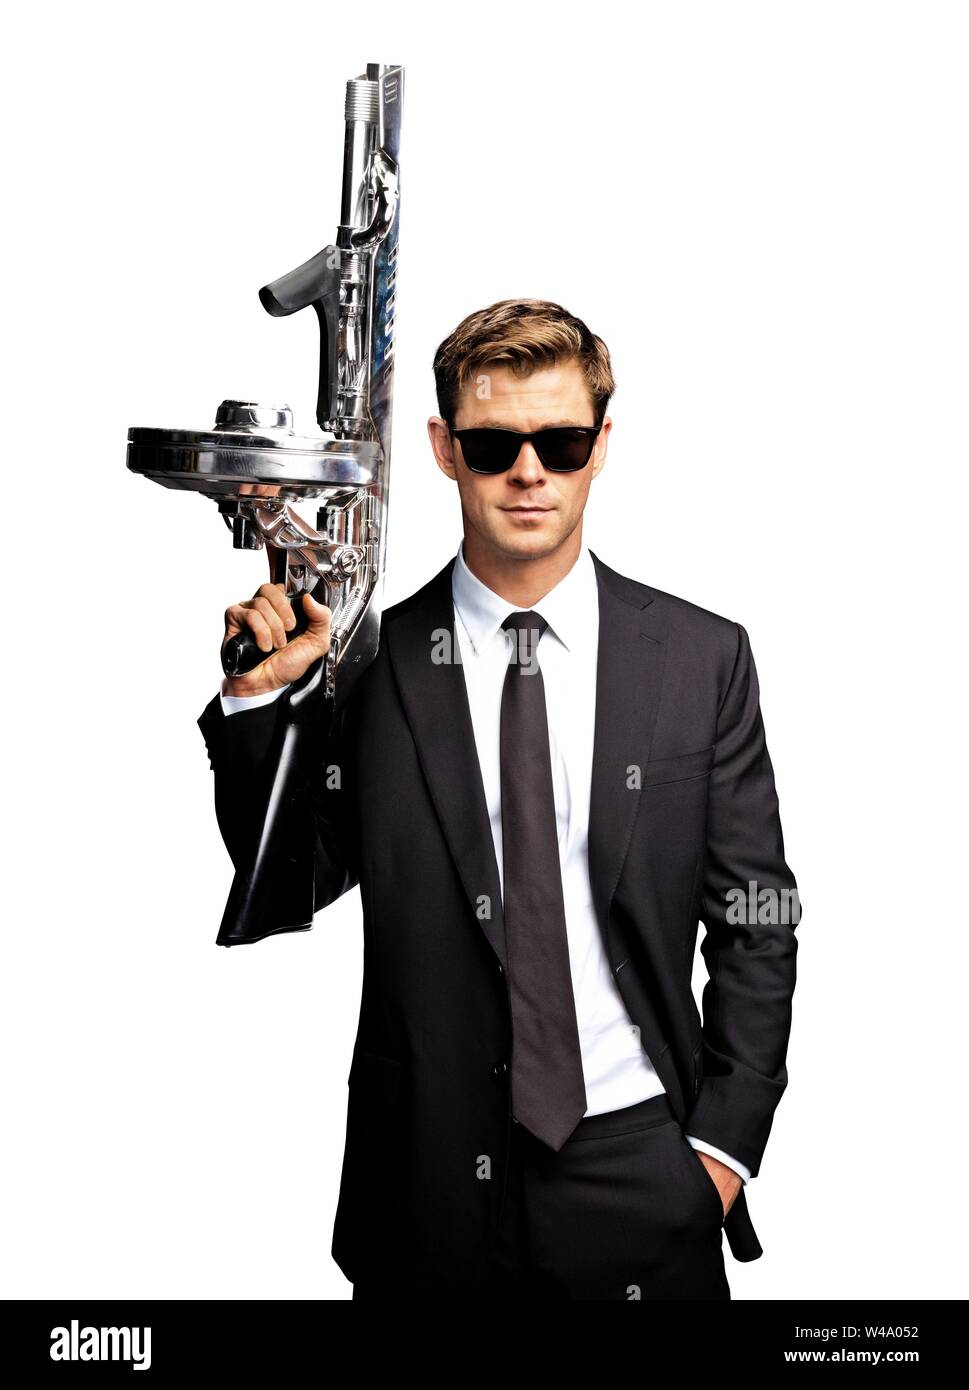 Chris Hemsworth In Men In Black International 2019 Directed By F Gary Gray Credit Columbia Pictures Album Stock Photo Alamy